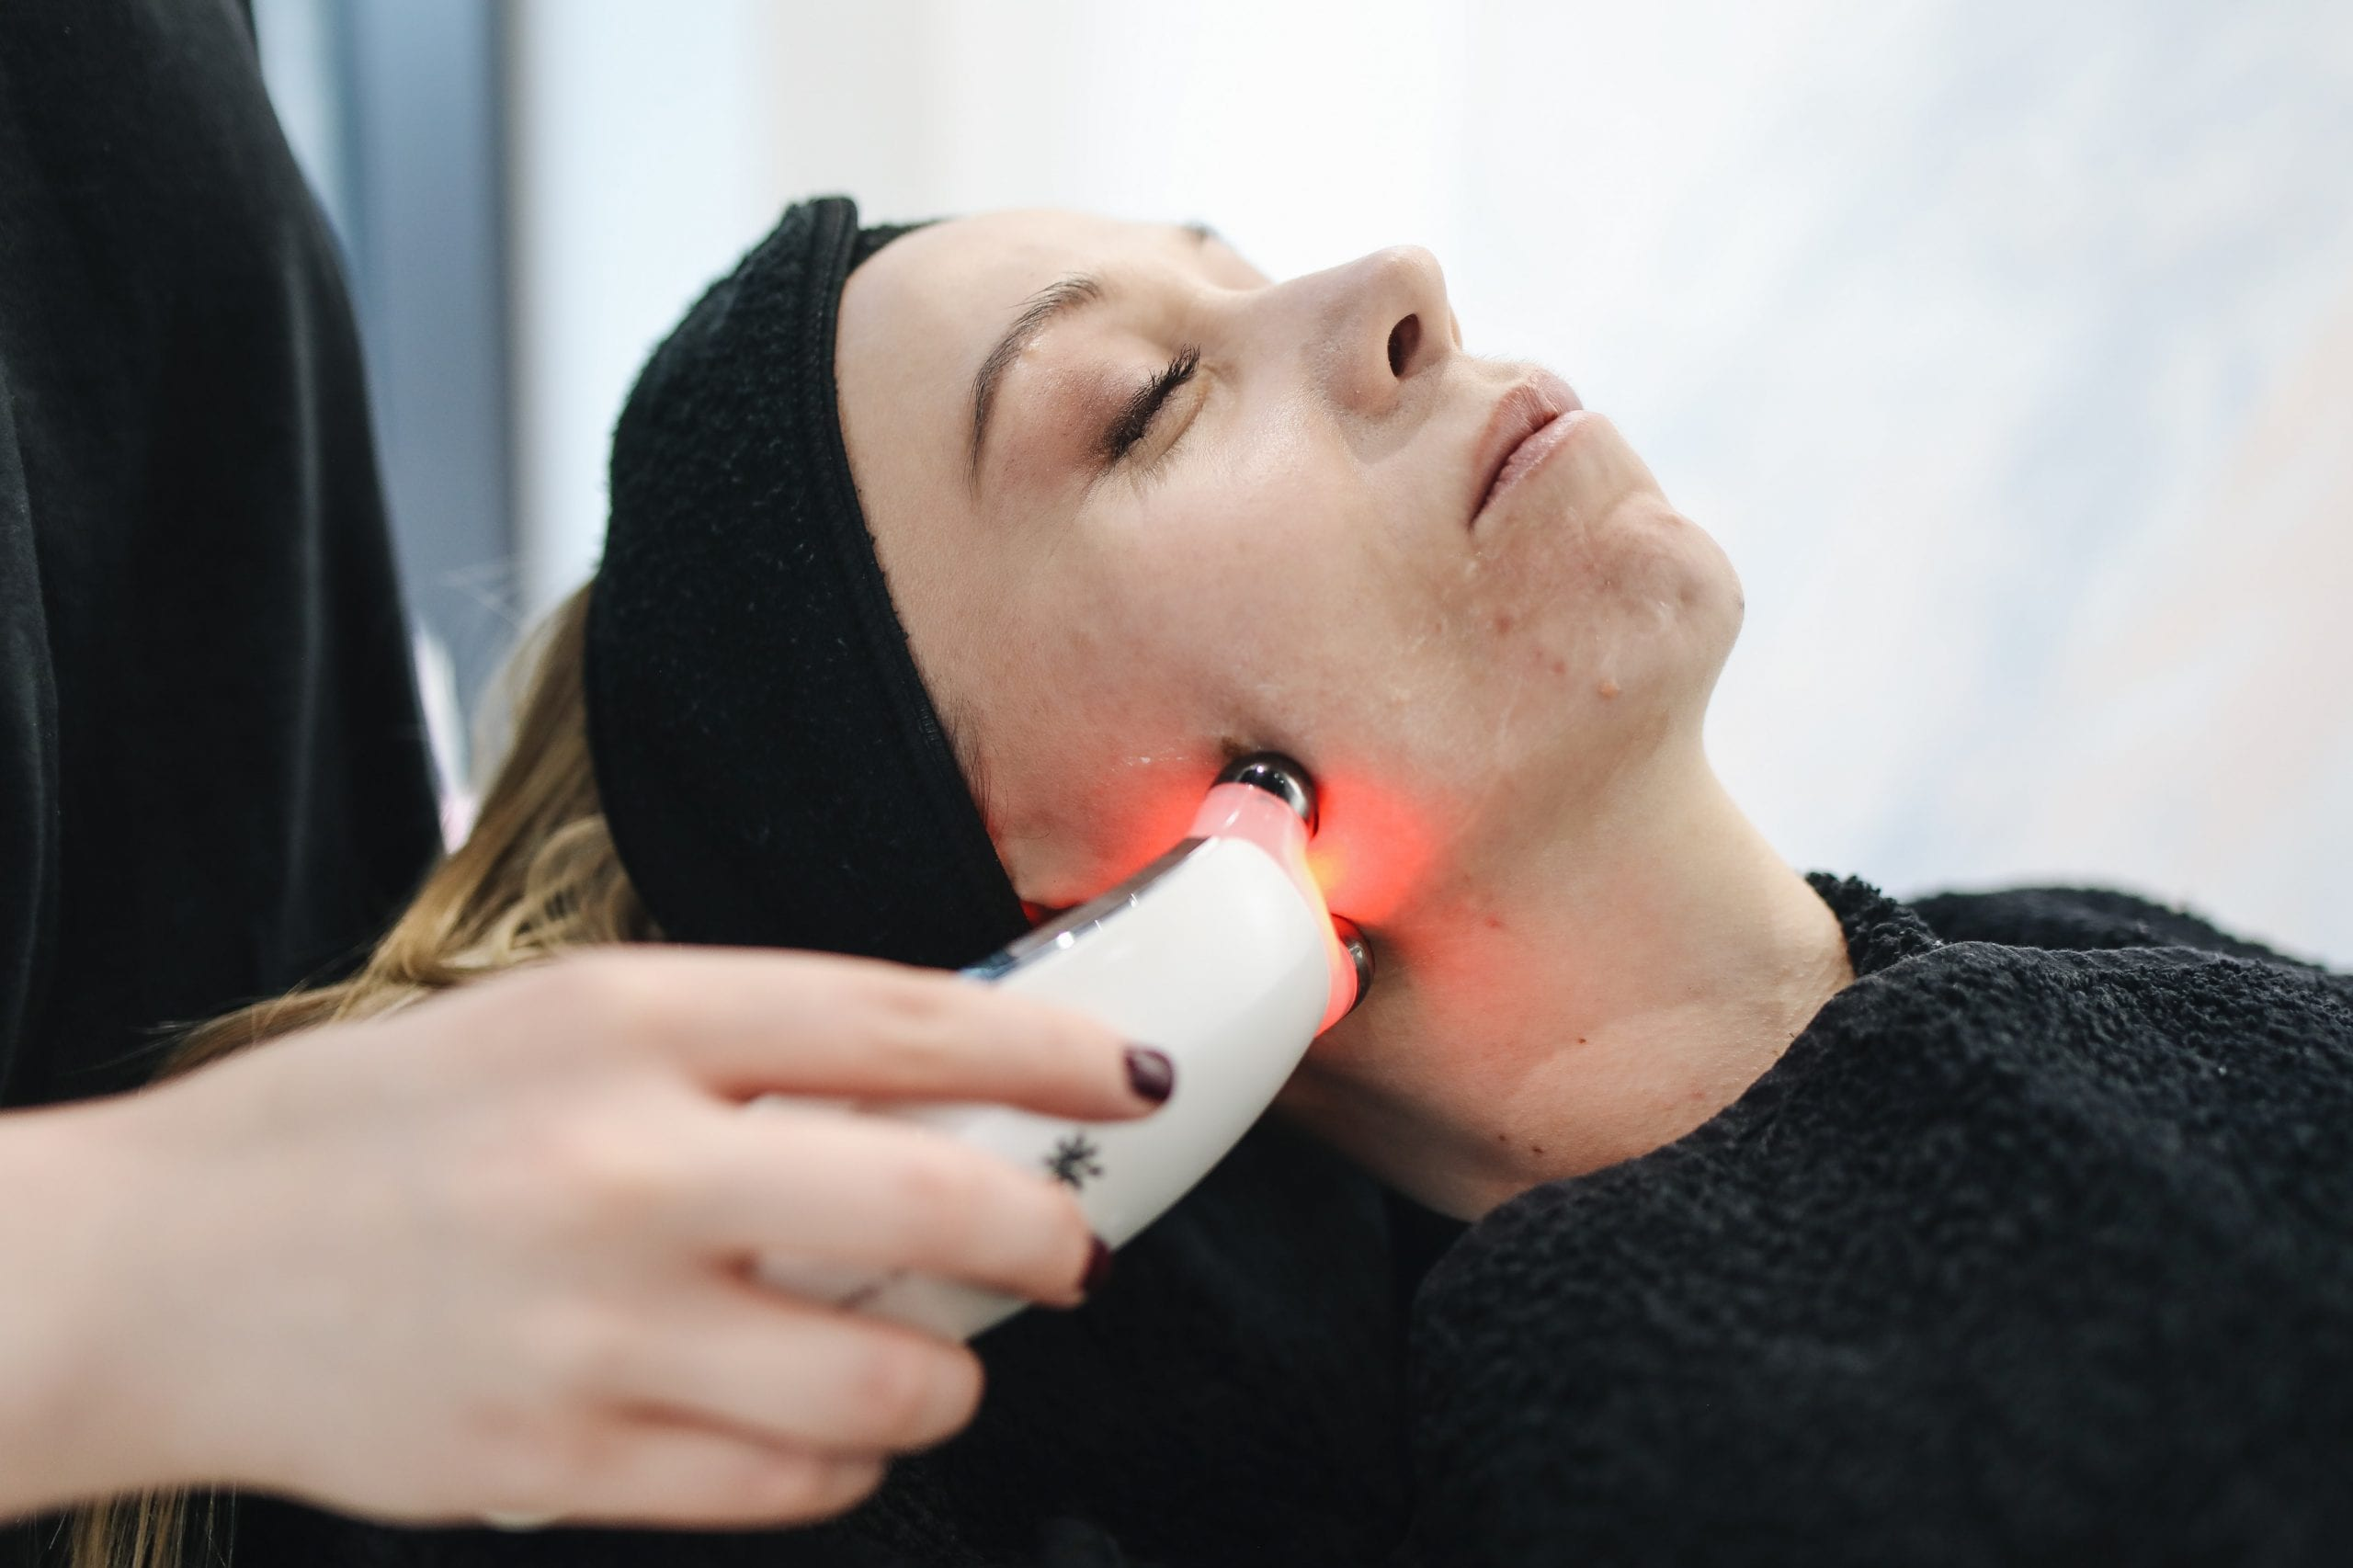 Which kind of laser beam is best for hair removal?